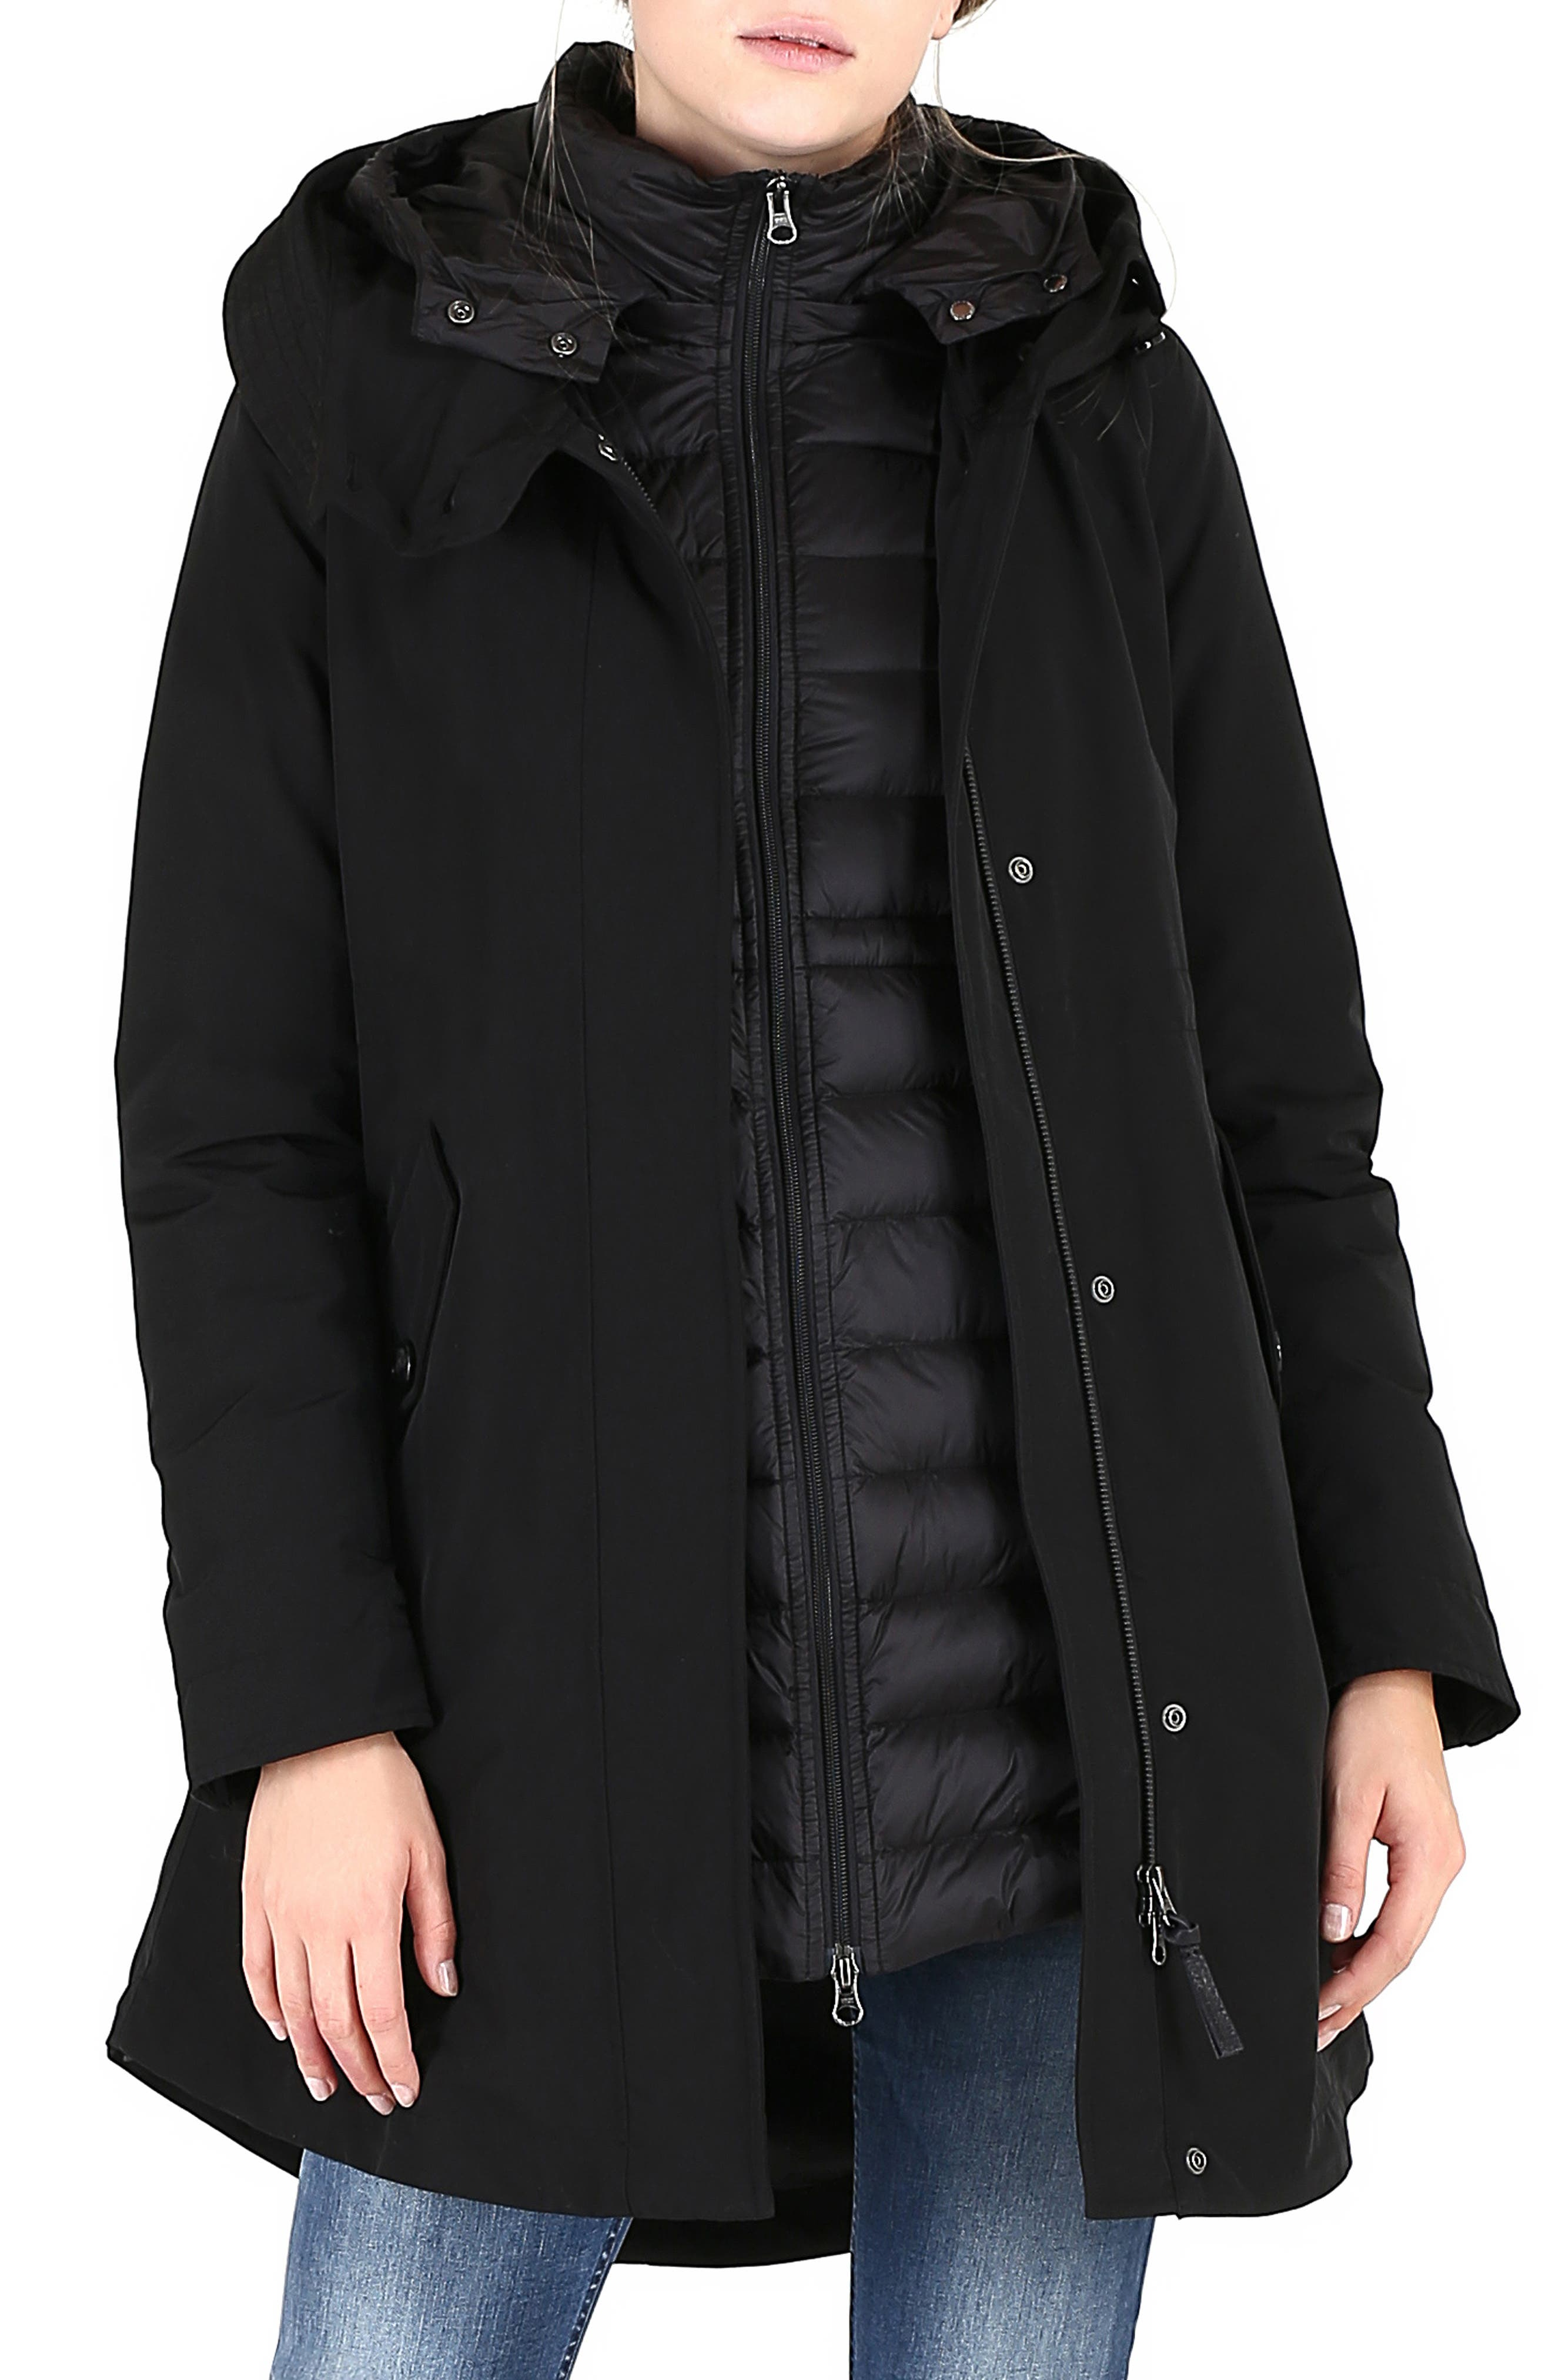 WOOLRICH, Long Military 3-in-1 Parka, Main thumbnail 1, color, 001